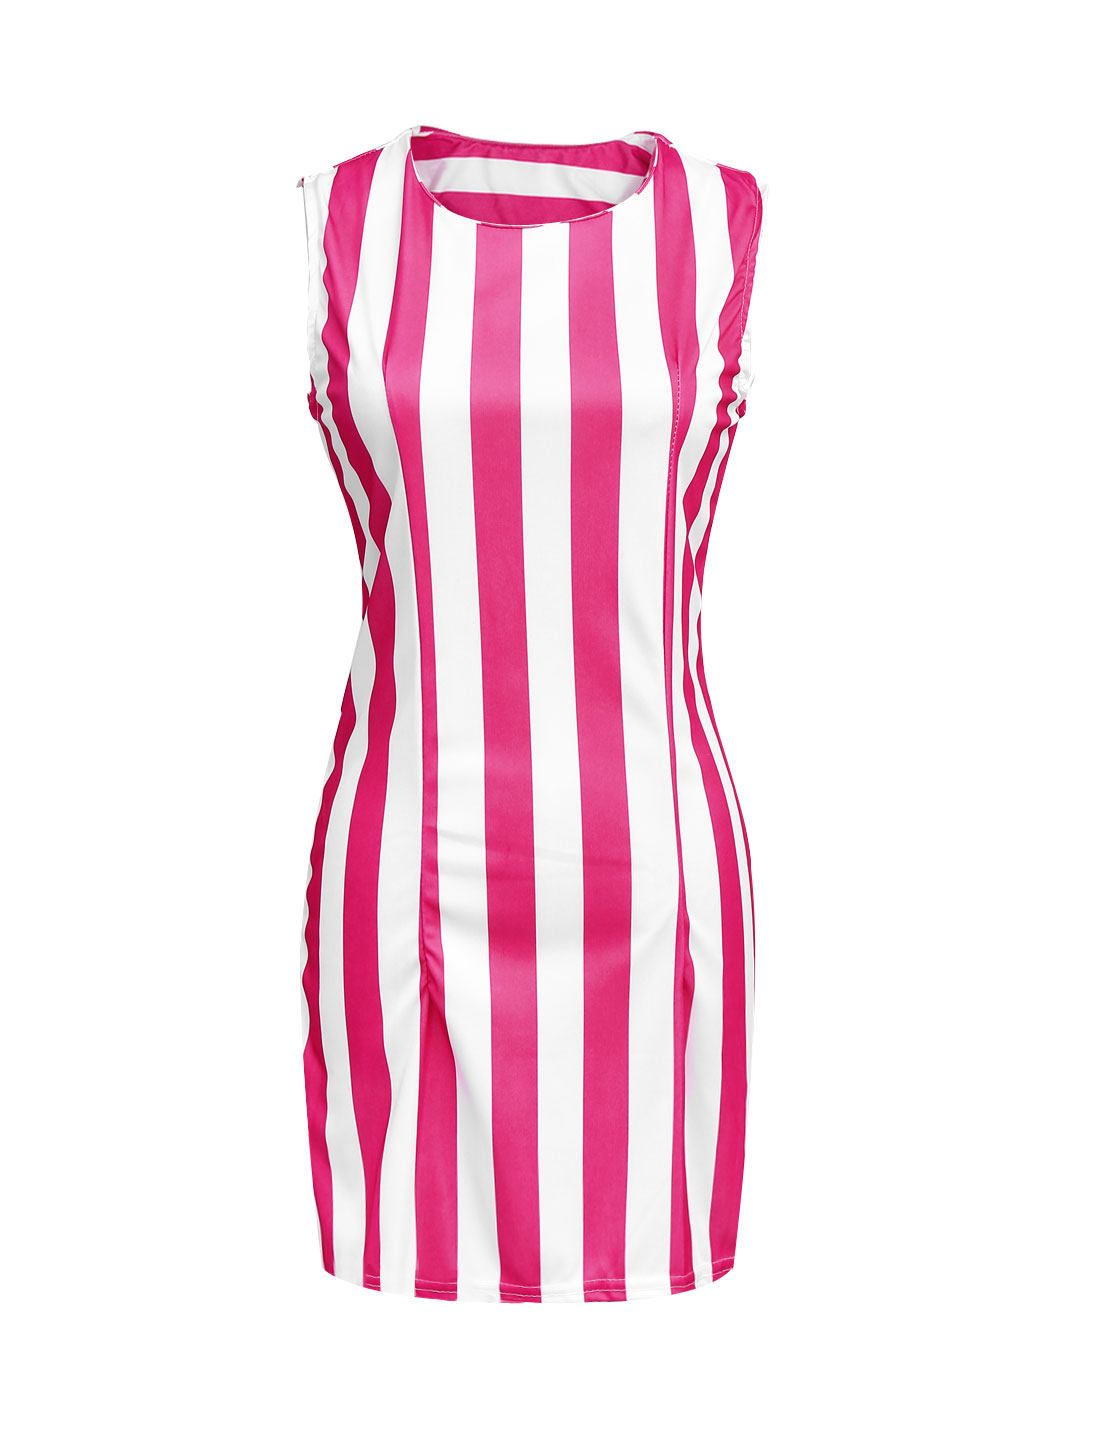 Lady Stripes Pattern Sleeveless Above Knee Sheath Dress Fuchsia White L